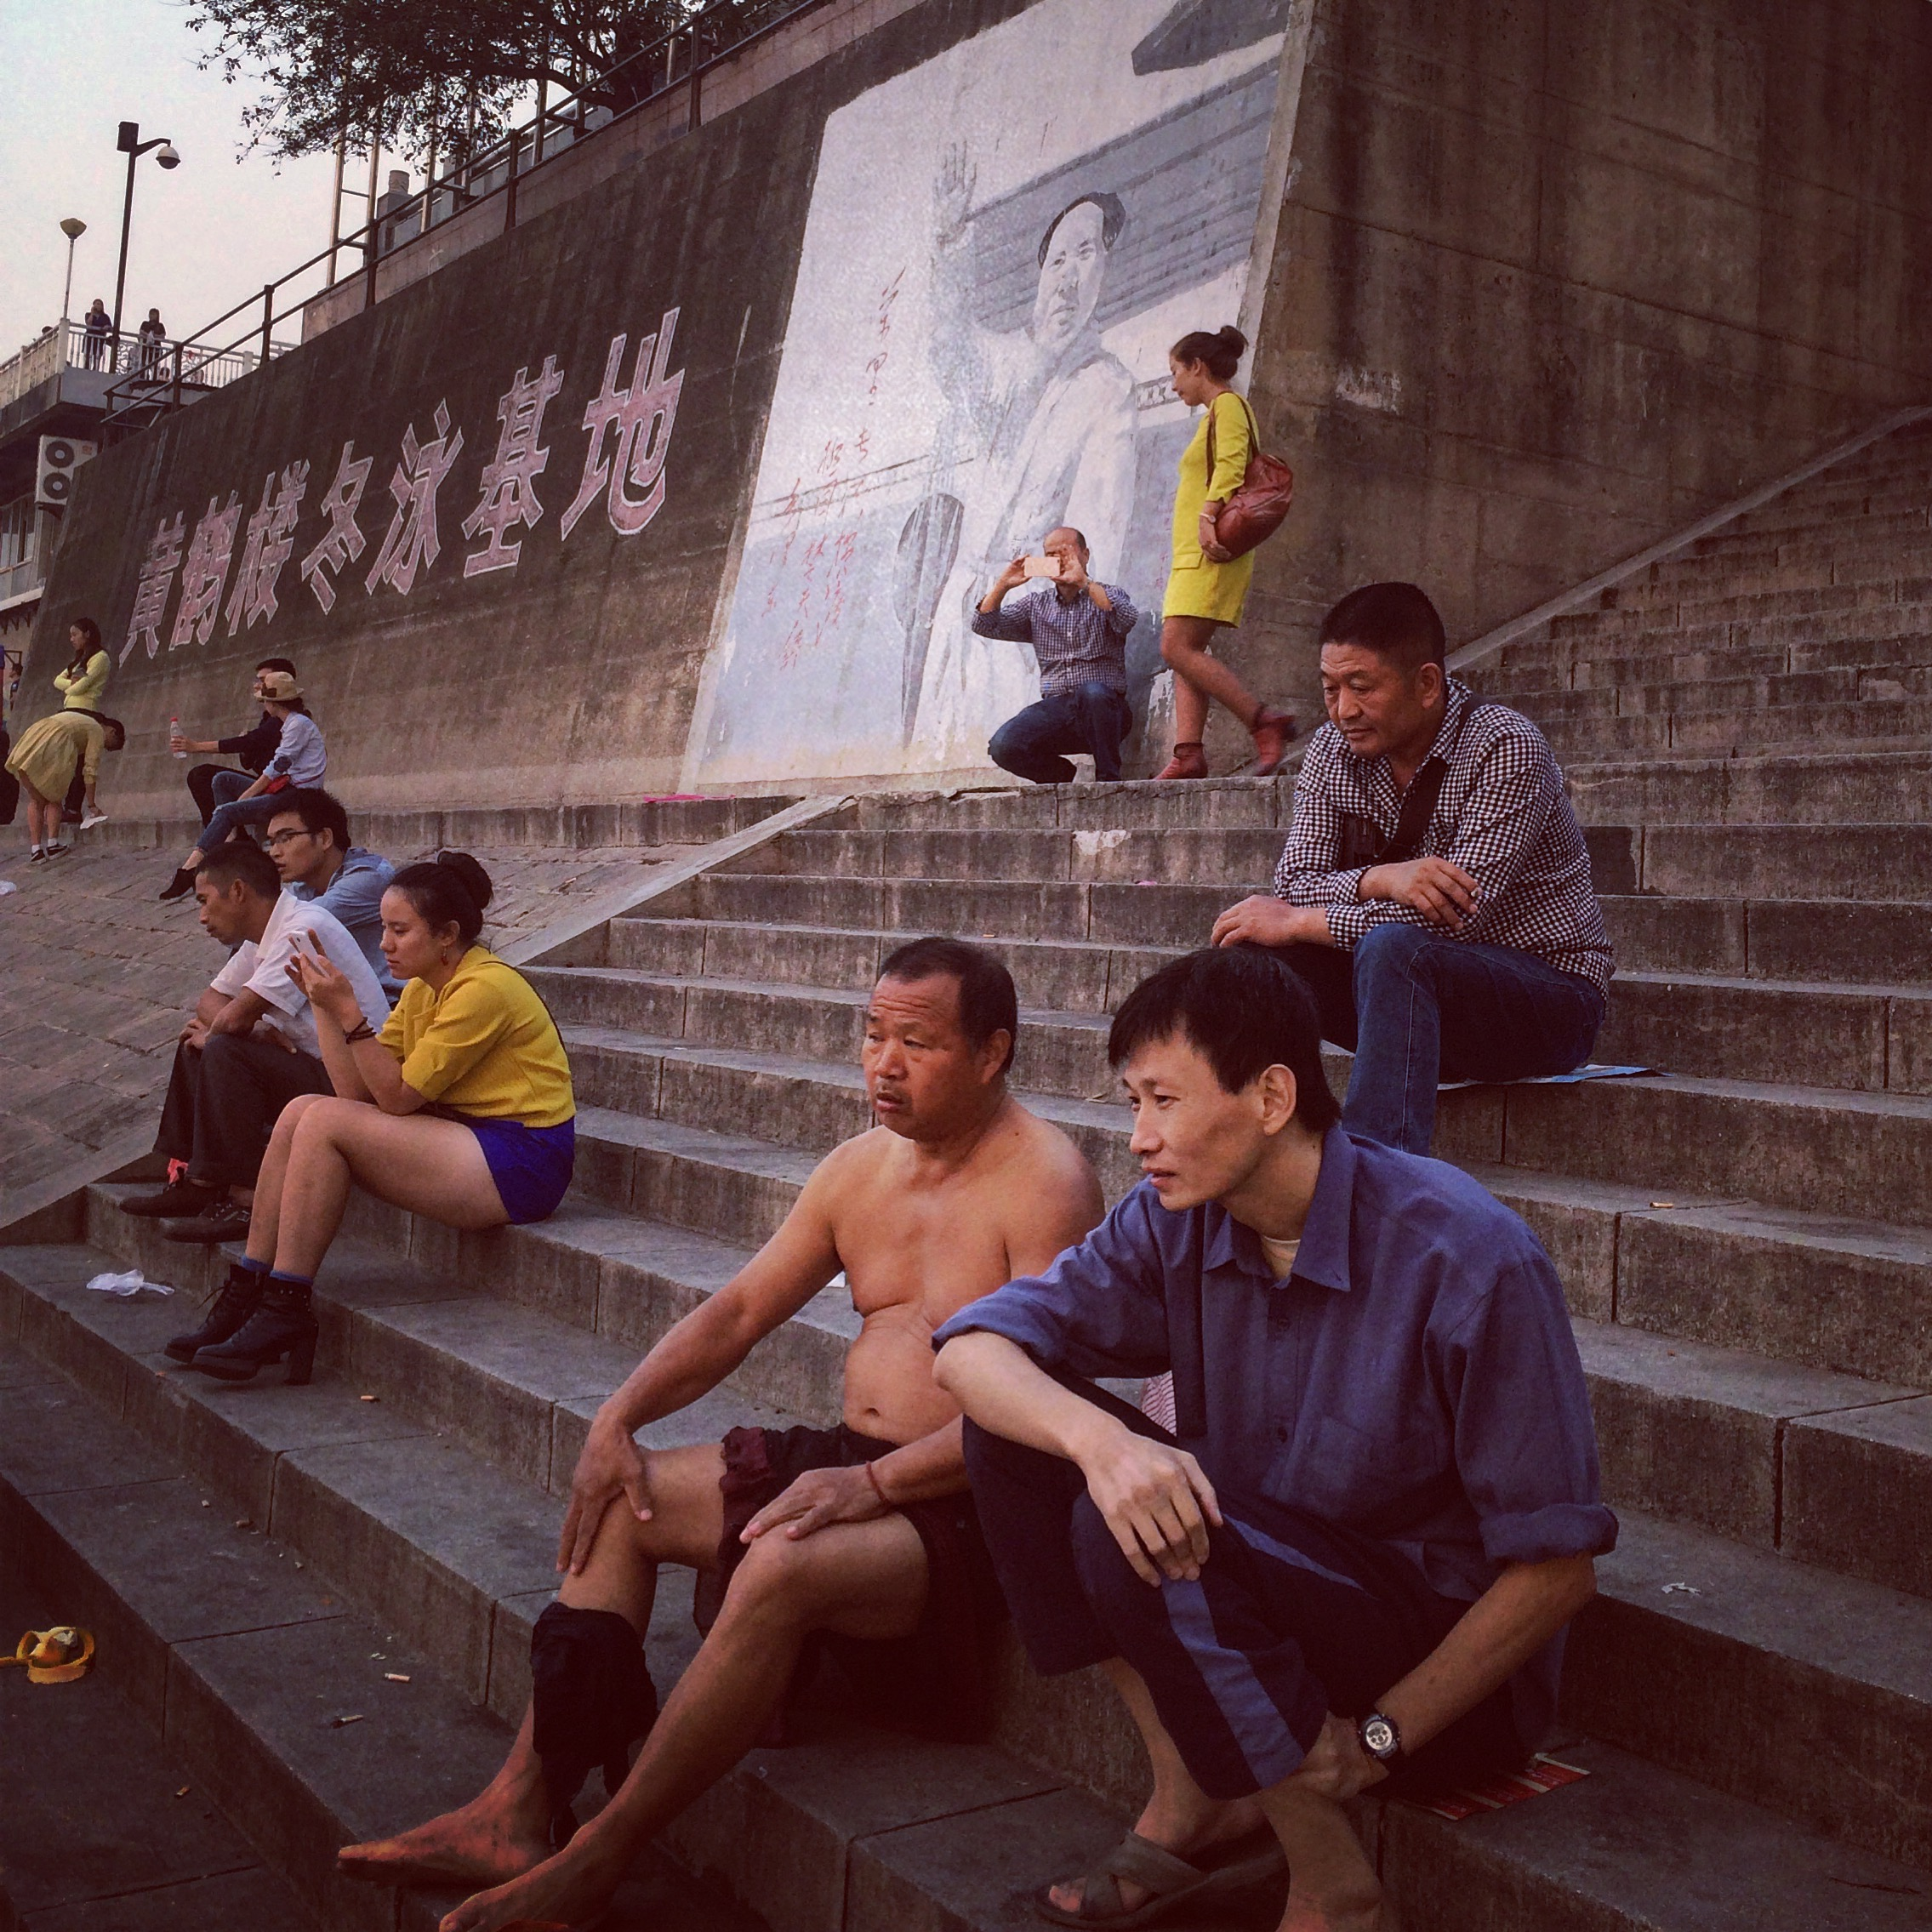 Locals relaxing by the Yangtze River where Chairman Mao famously took a swim to prove his stamina as national leader. Hubei Province.